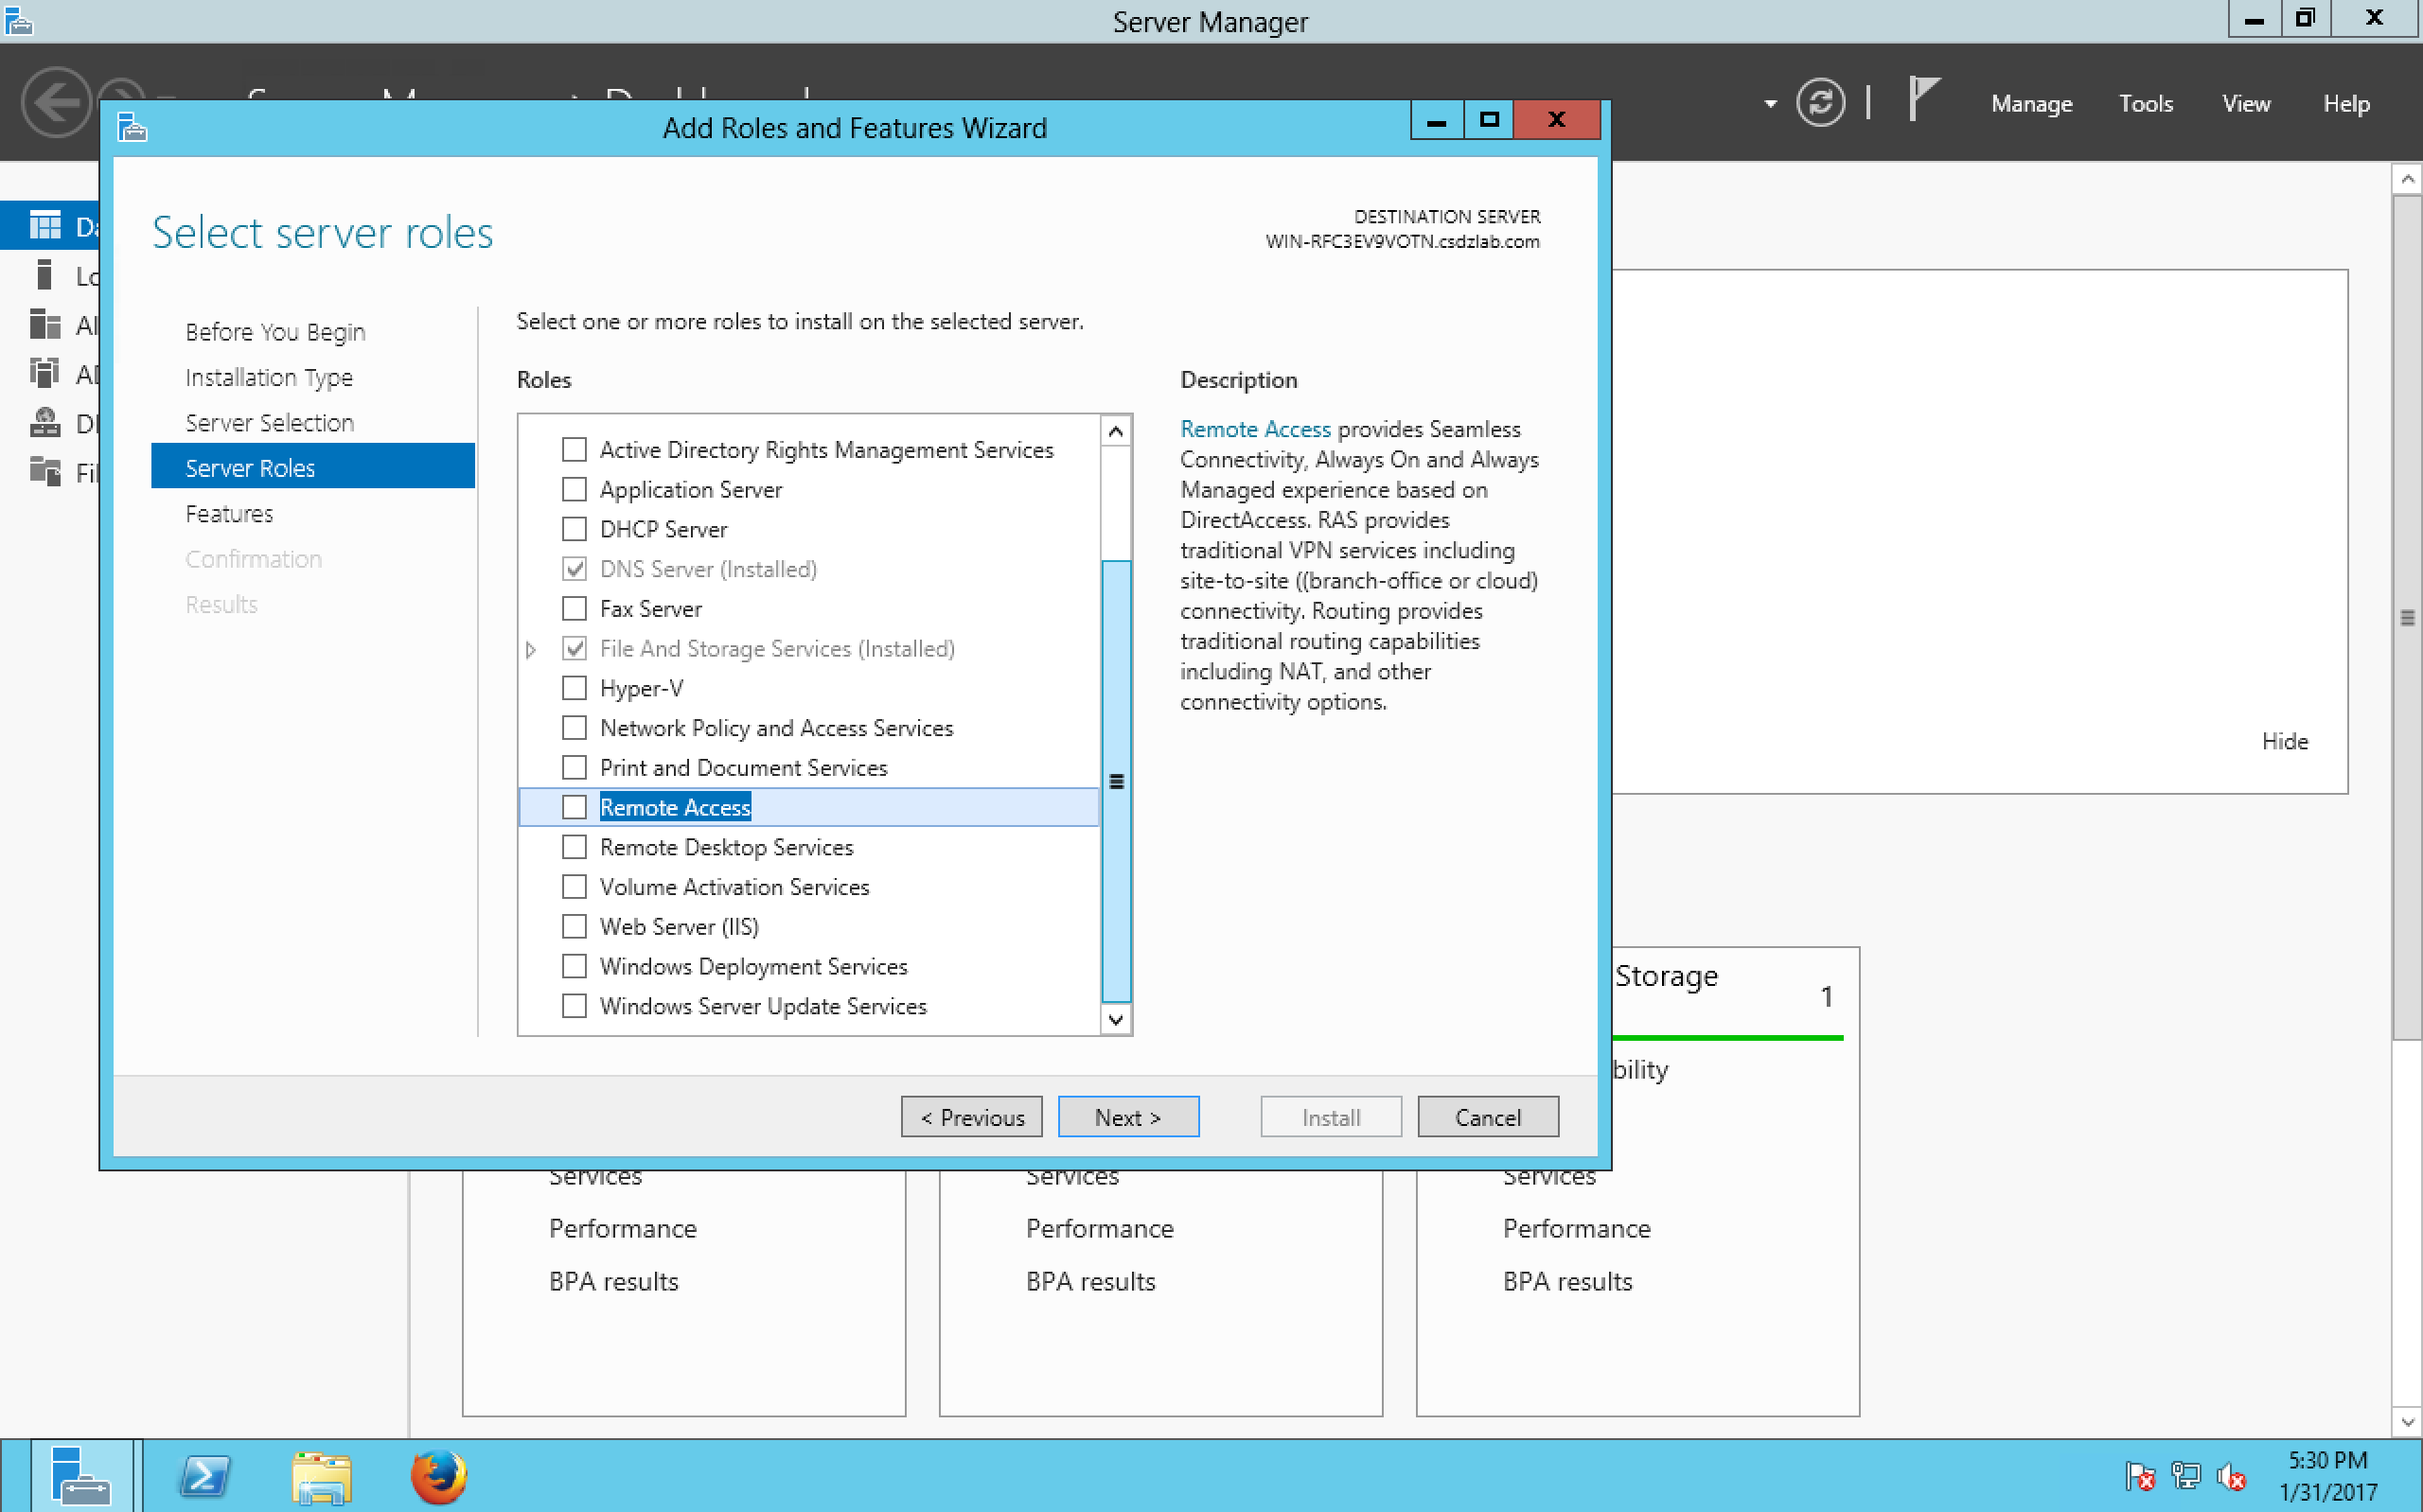 Installing the routing and remote access role on Windows Server 2012 R2